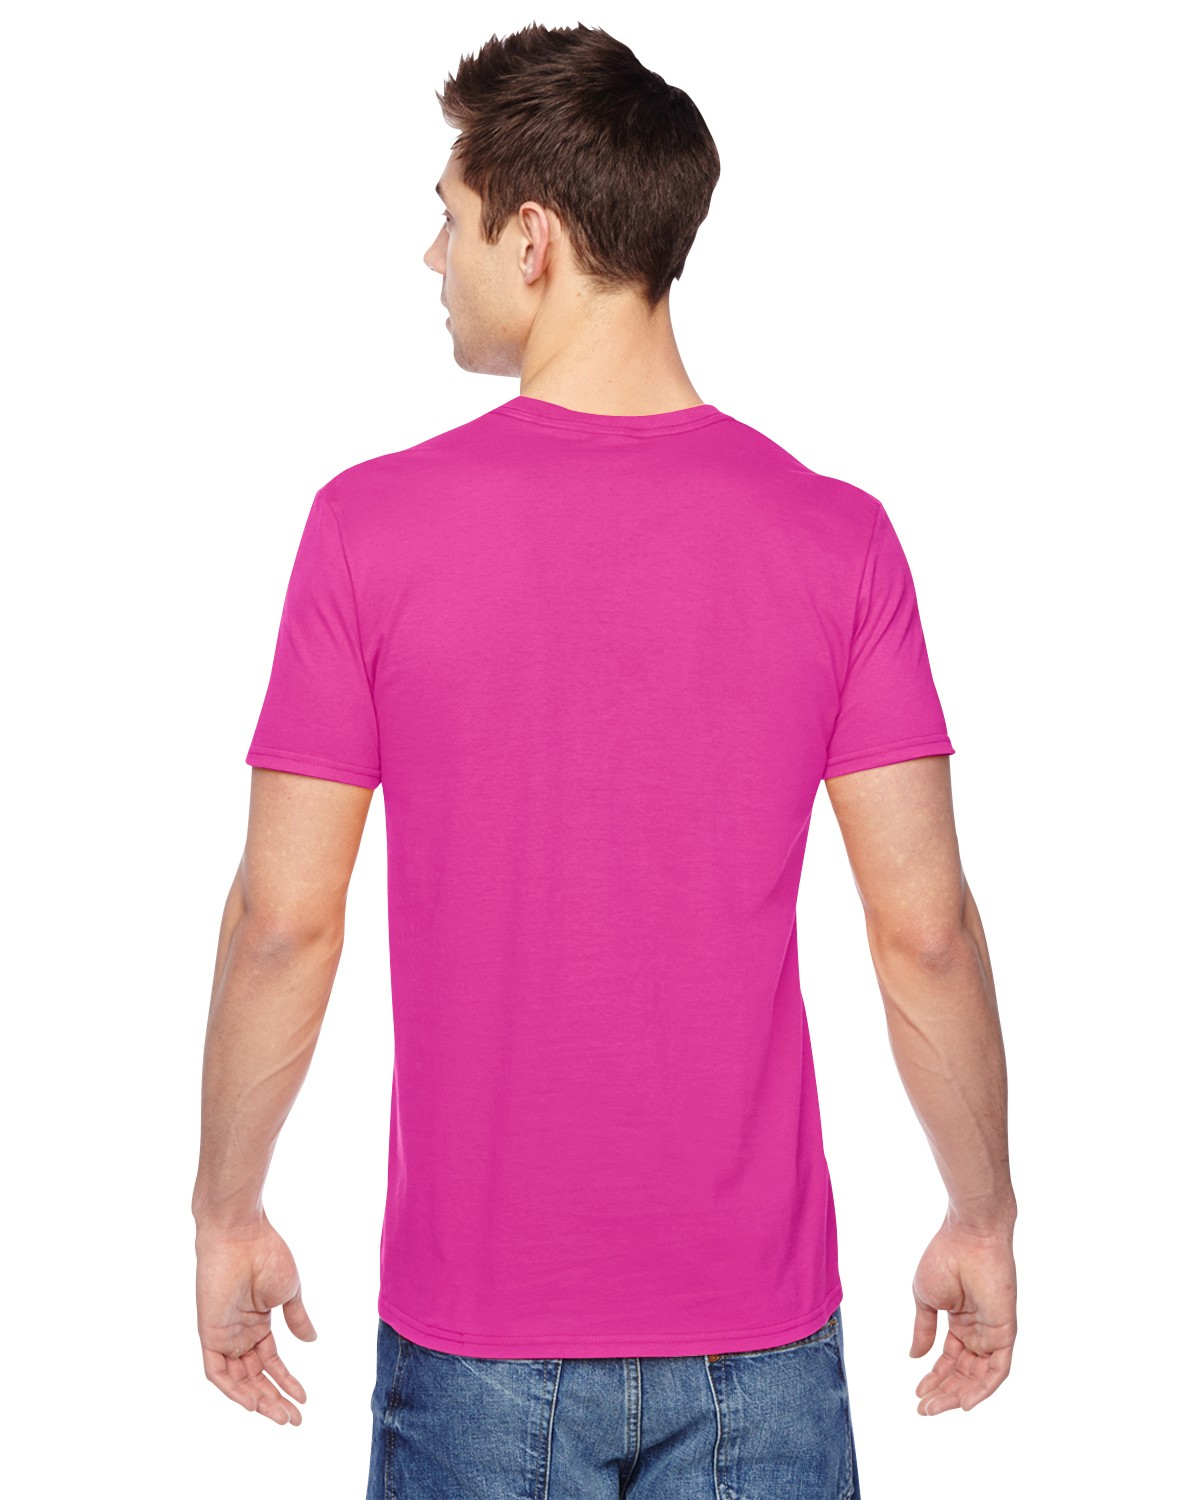 SF45R Fruit of the Loom CYBER PINK